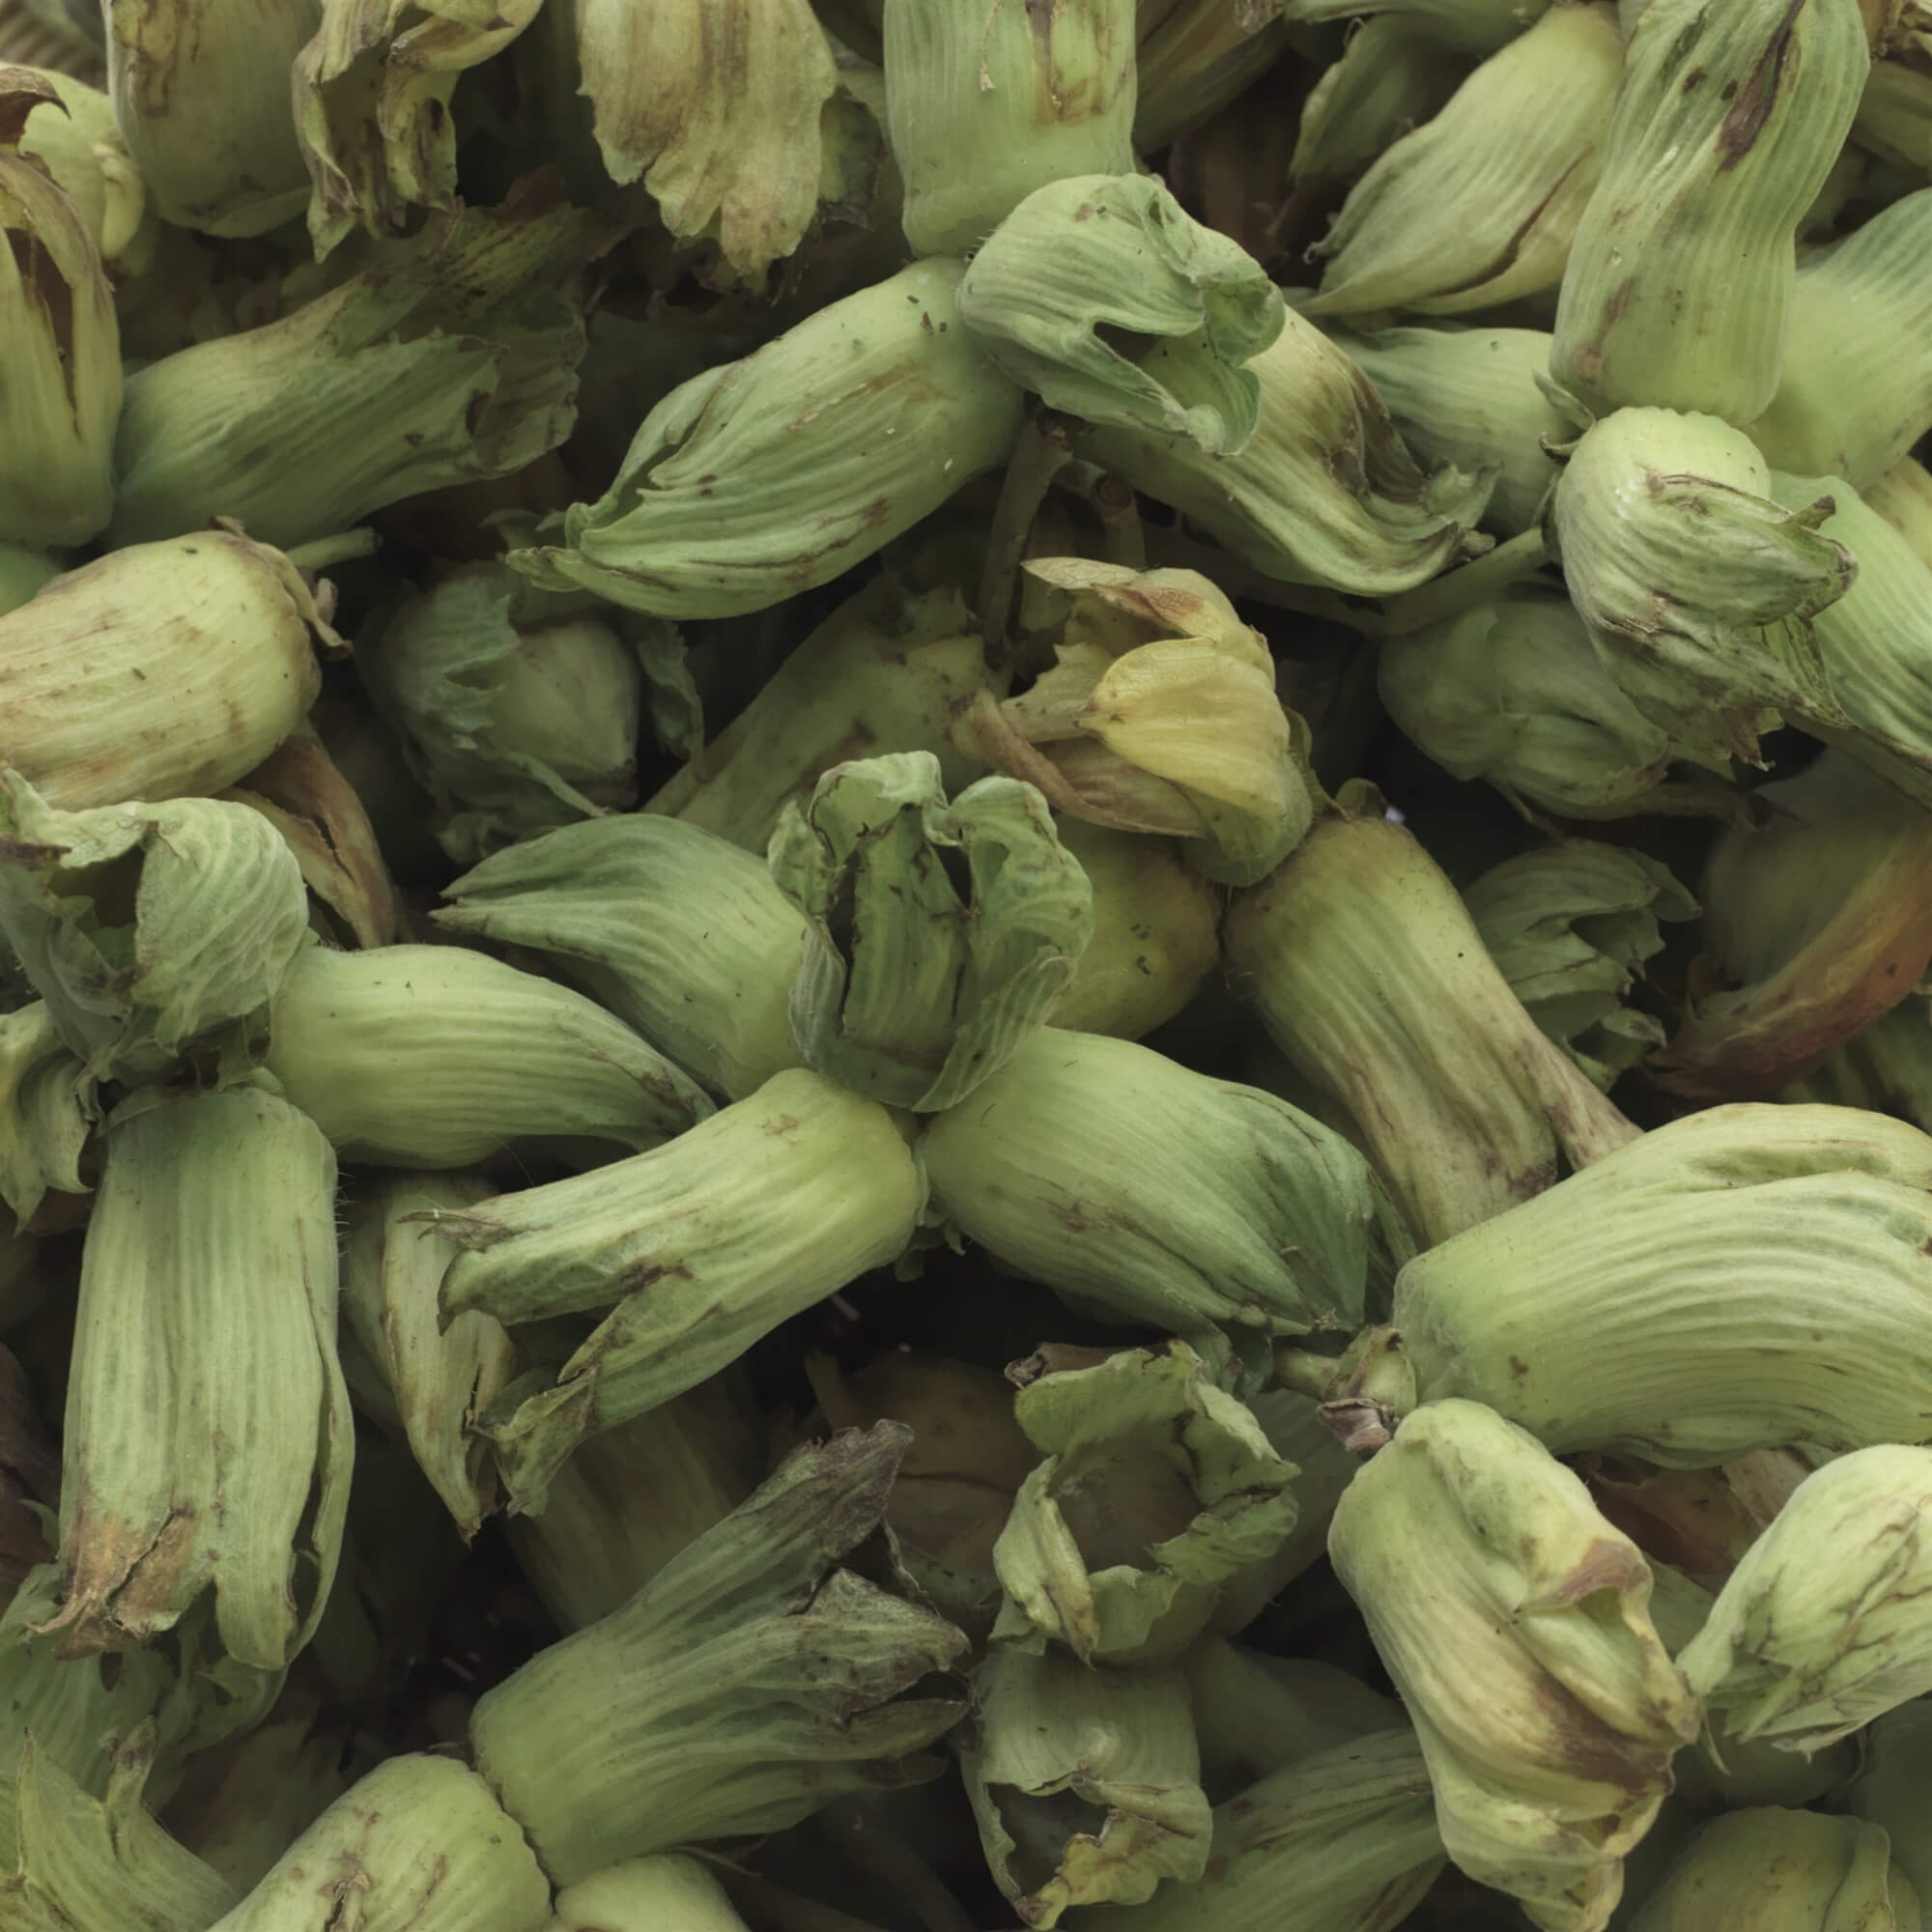 Green Kentish Cobnuts - A Cobnut is a type of hazelnut traditionally grown in Kent. They are harvested in their green state form mid August and with brown shells and husks by mid October.